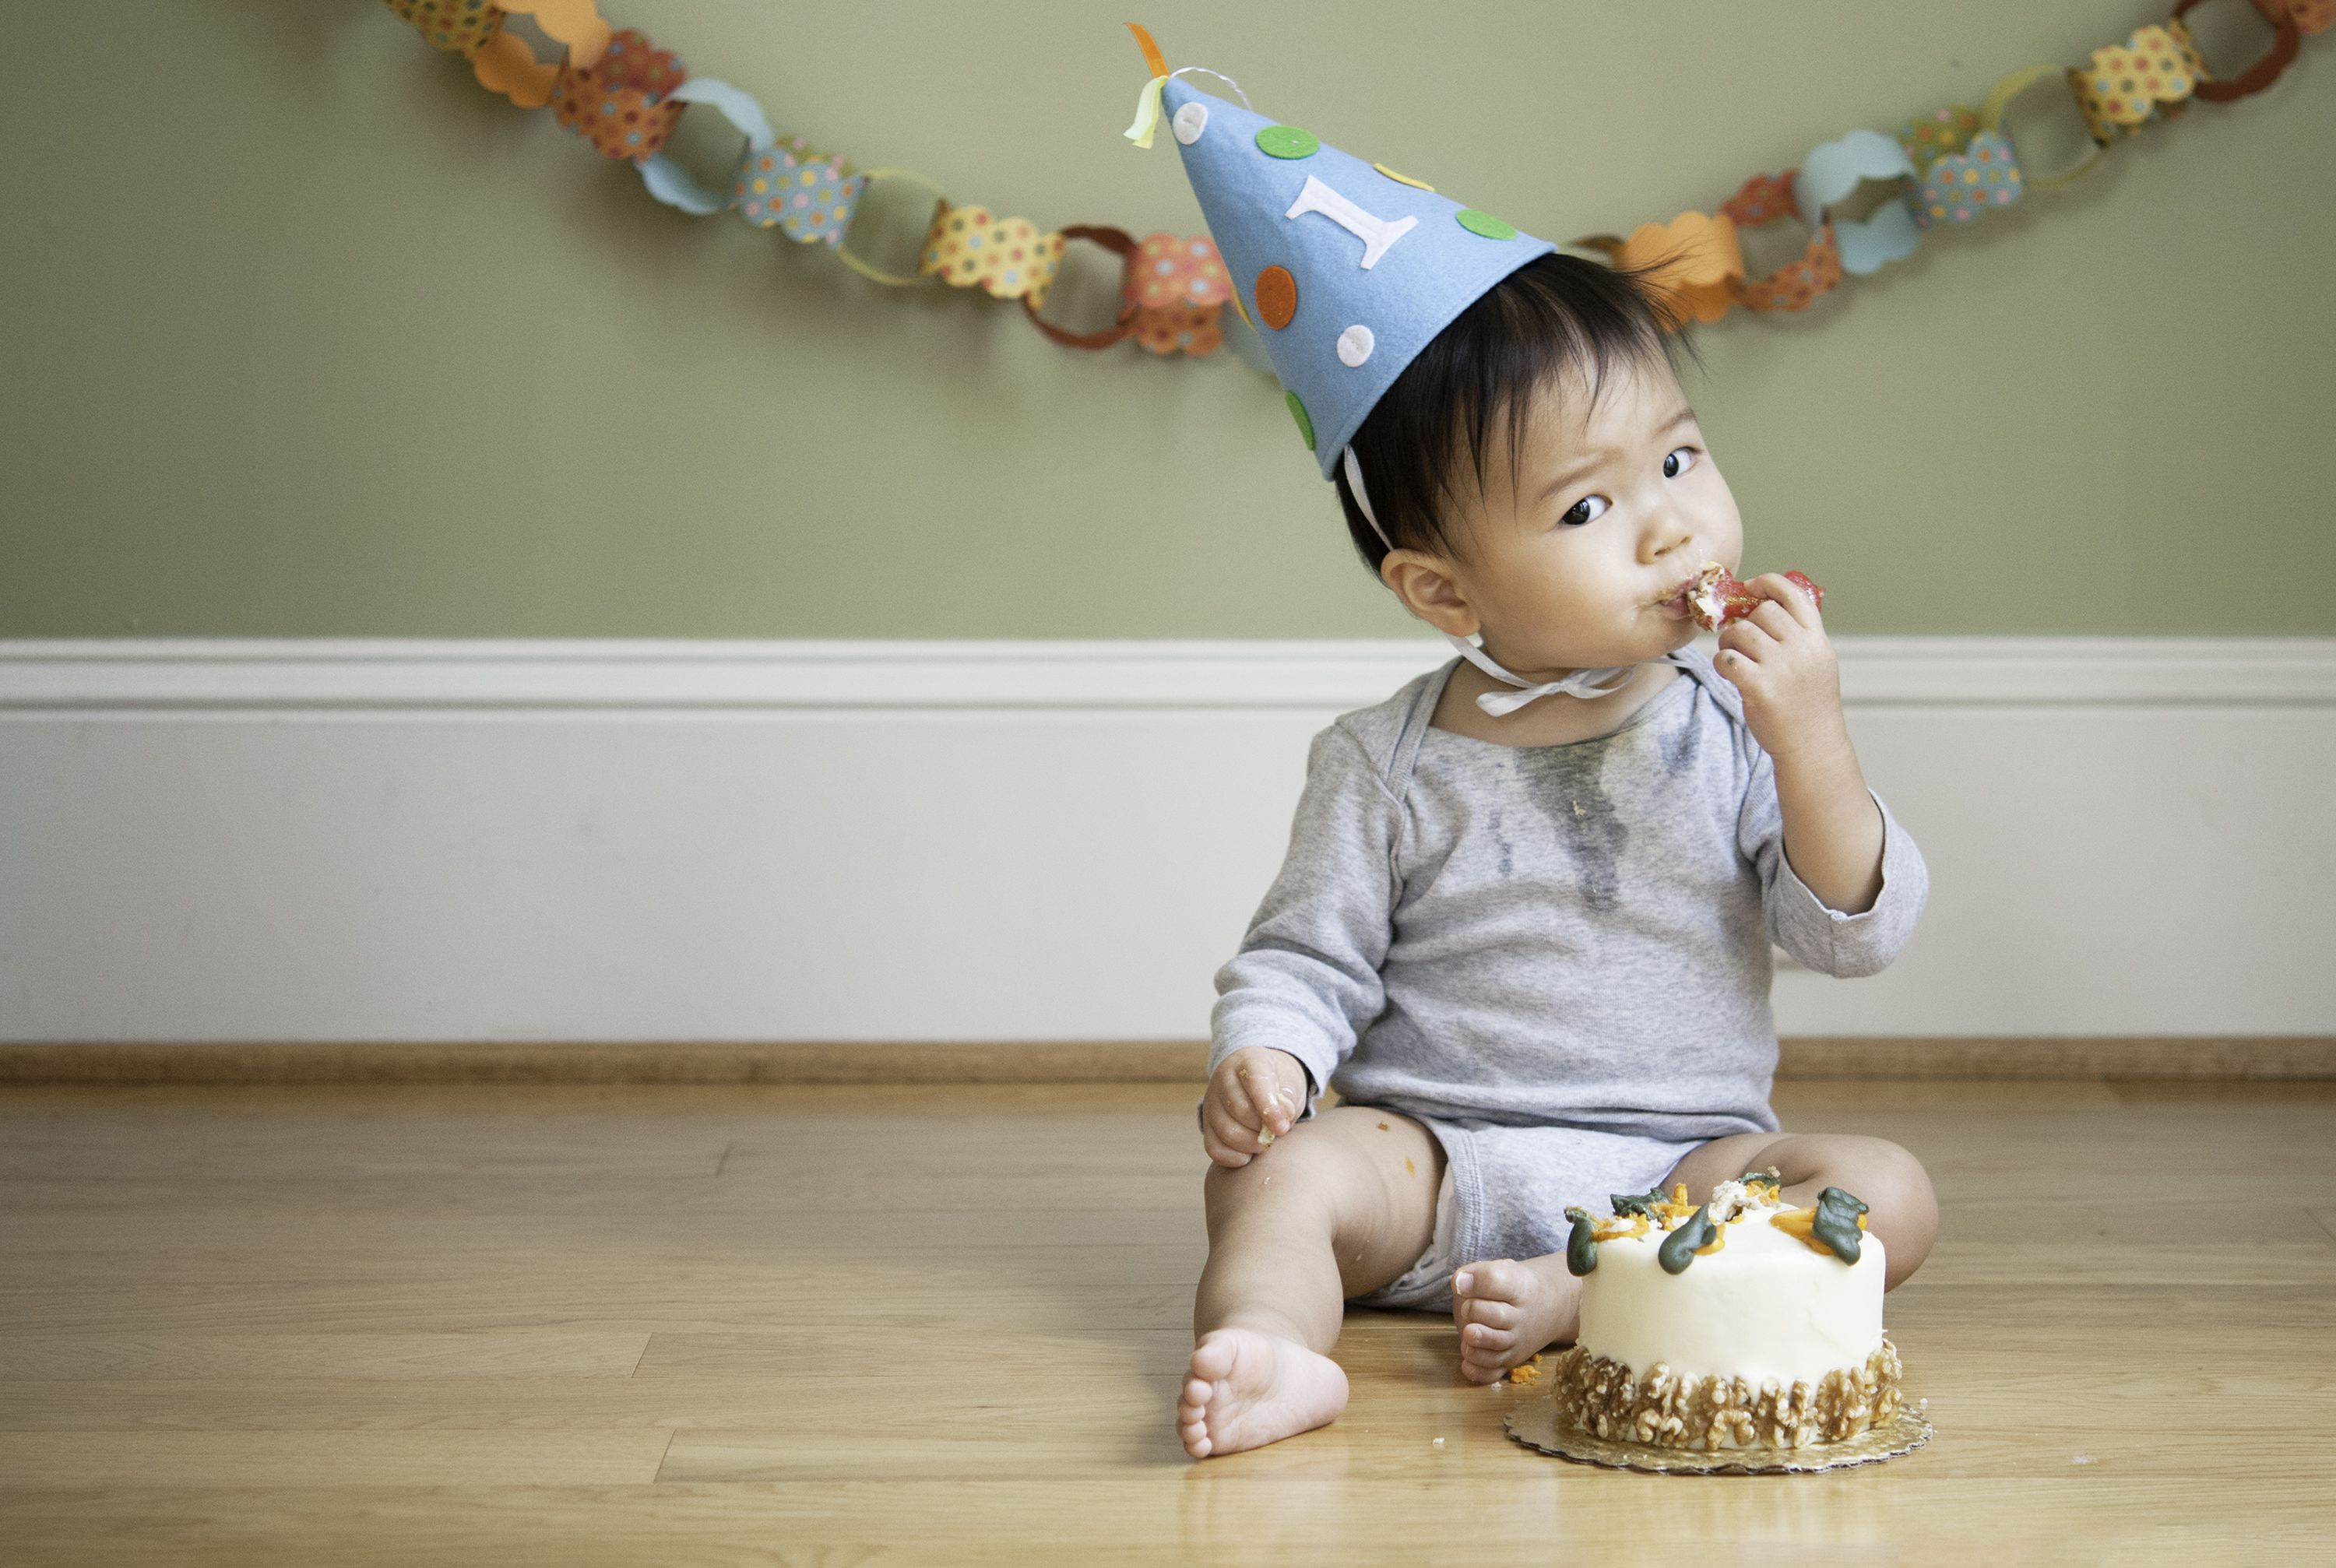 Good Birthday Gift For 1 Year Old Baby Girl: Great Games For First Birthday Party Fun